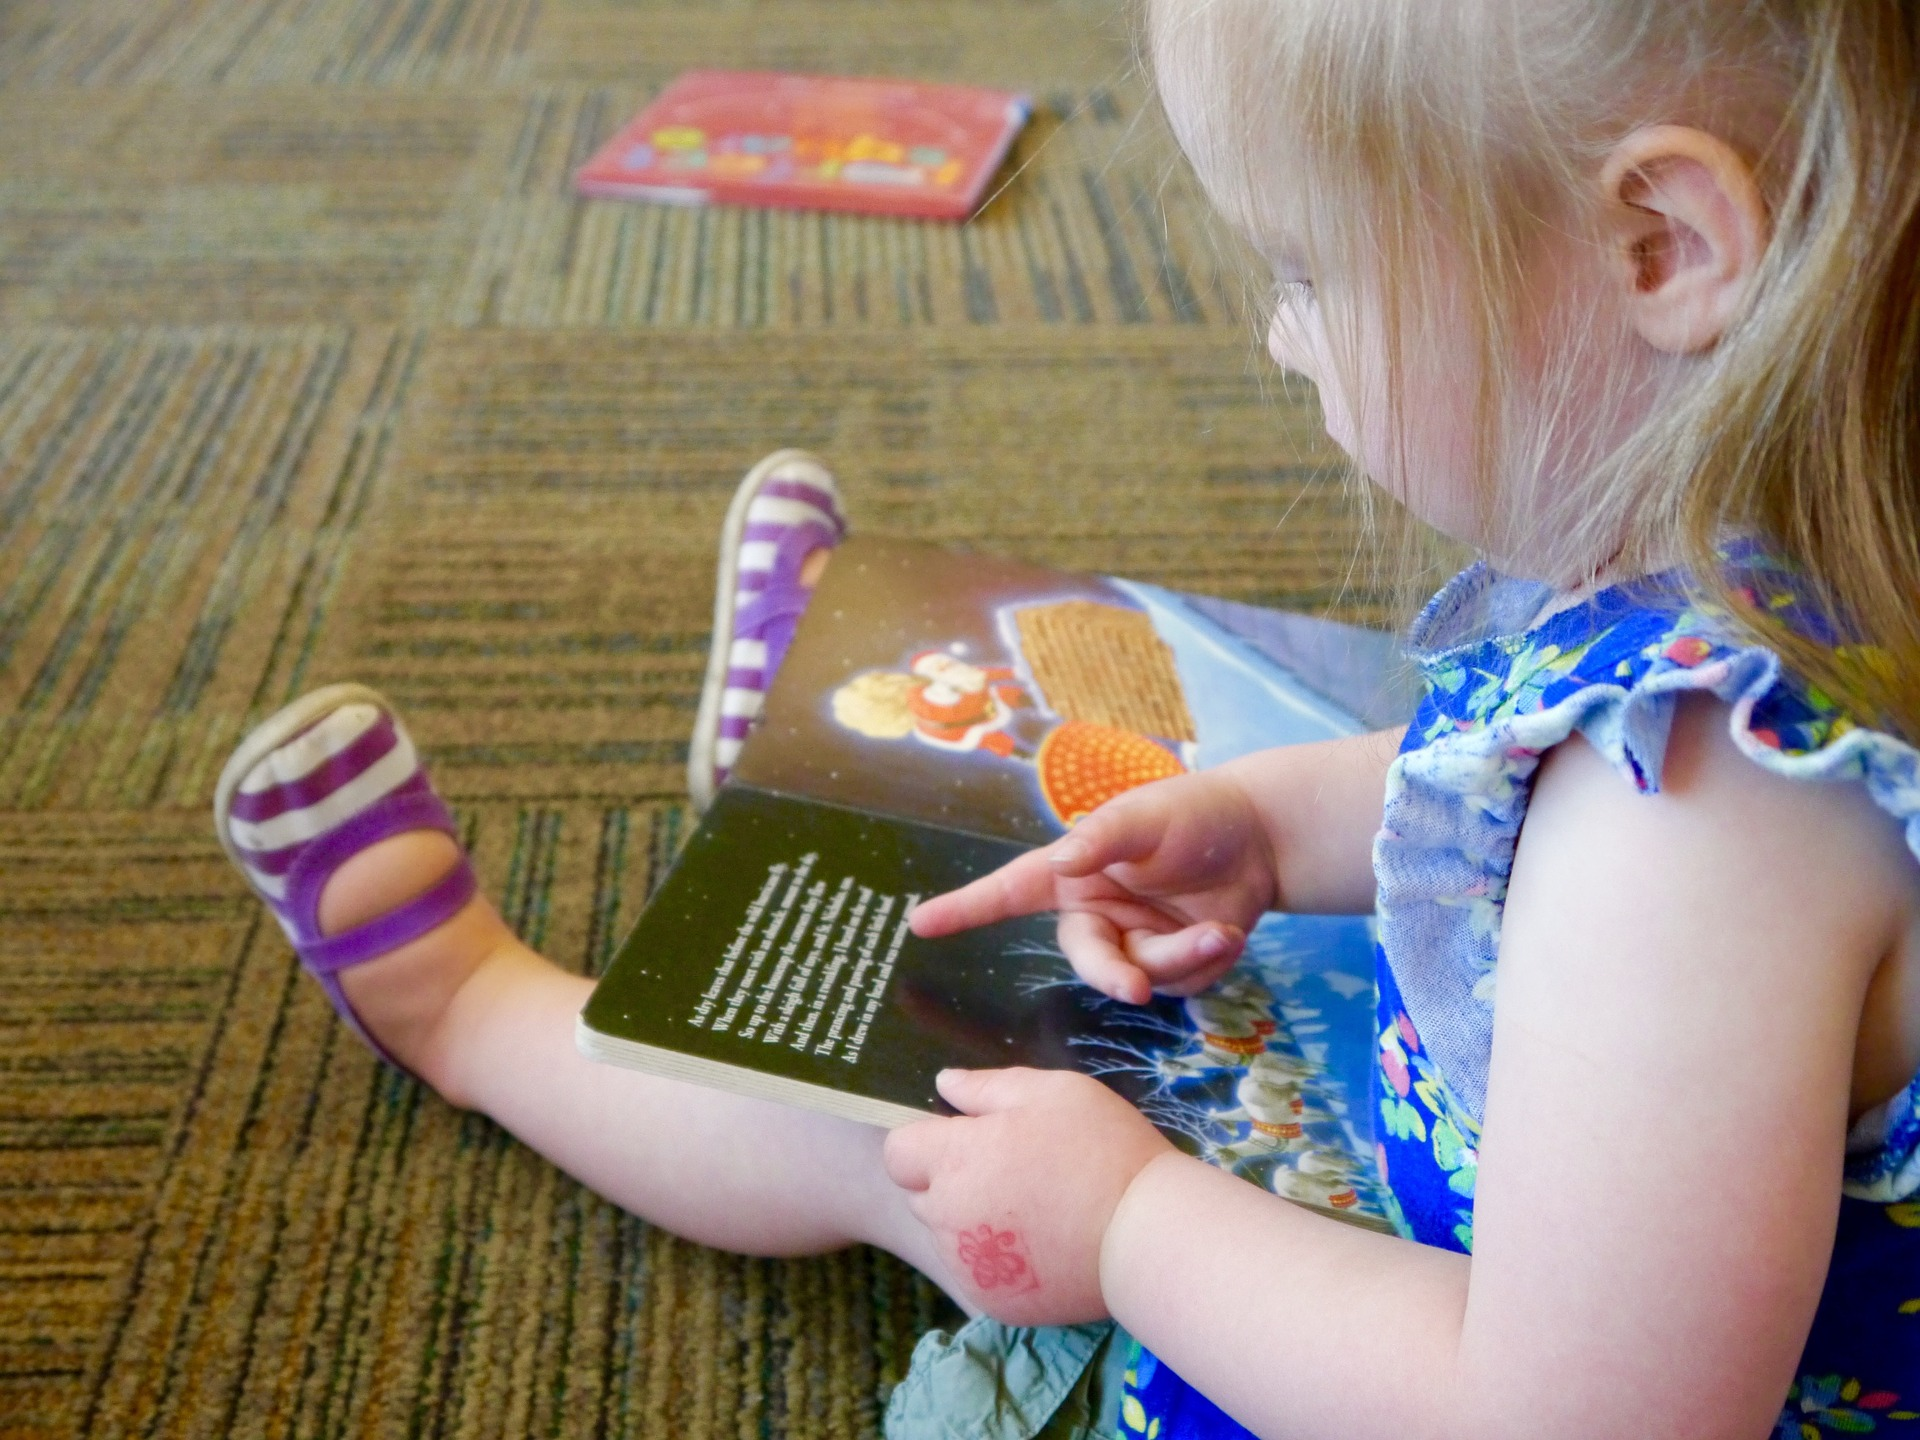 Toddler girl sitting in the library with open picture book on lap